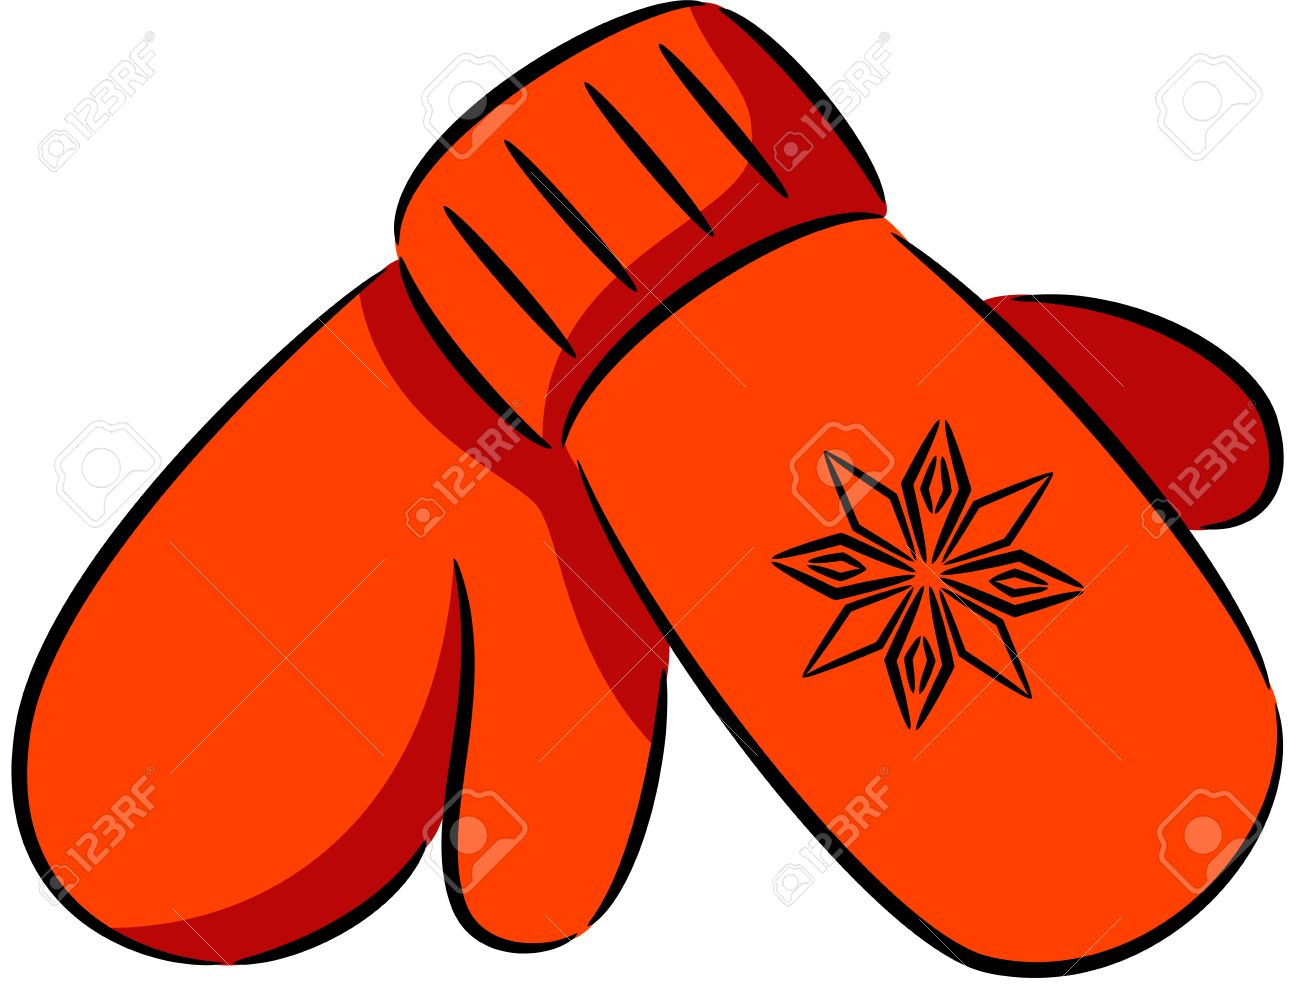 Mitten . Mittens clipart orange